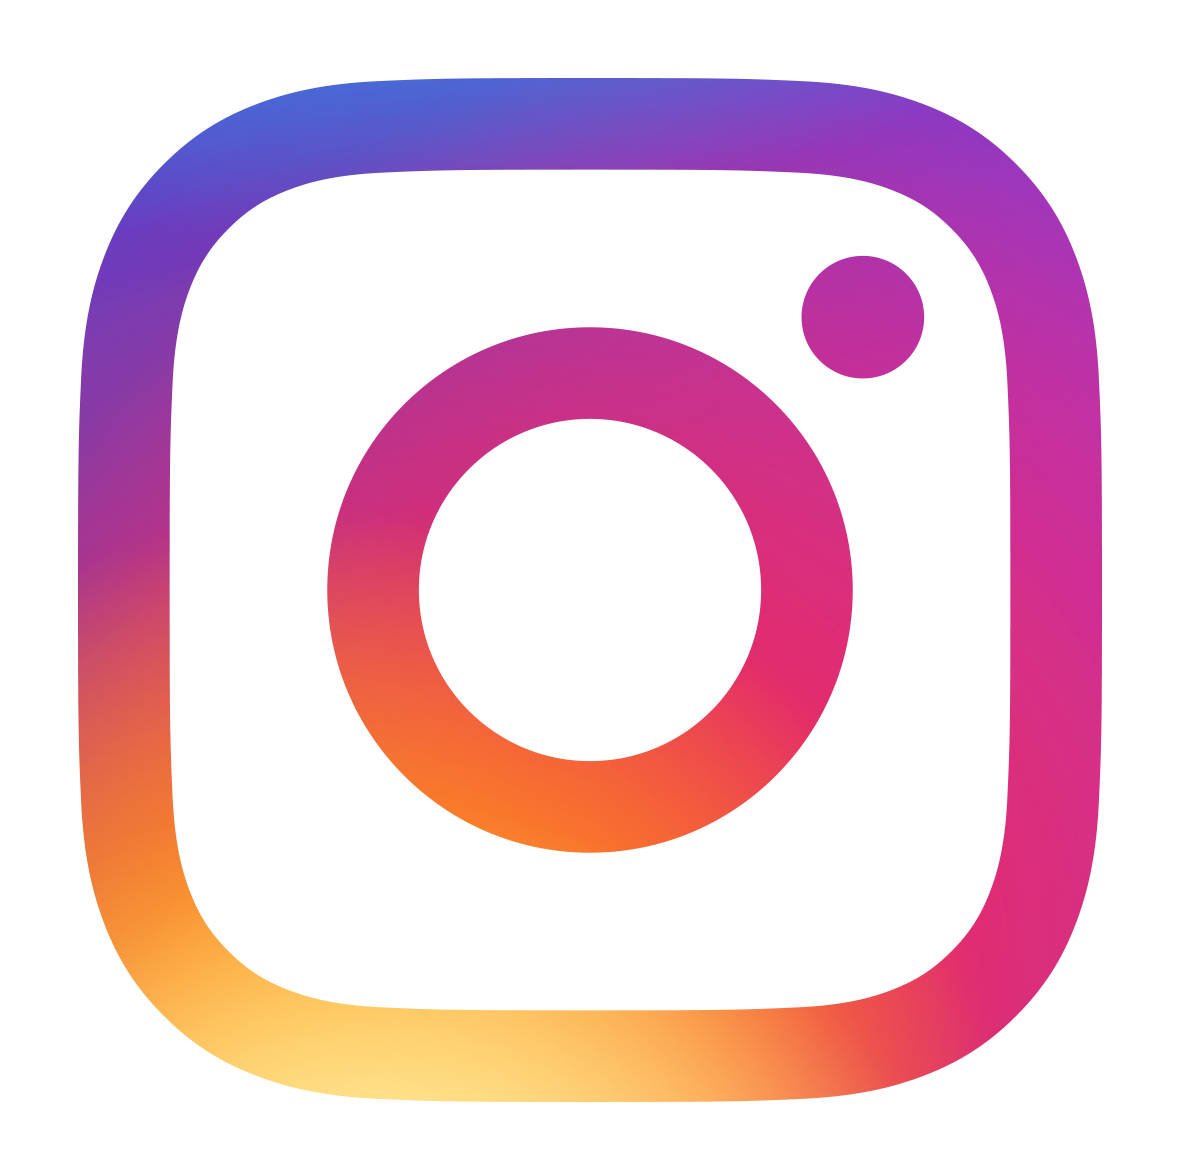 Multicolored instagram icon with link to Virginia Center Commons instagram